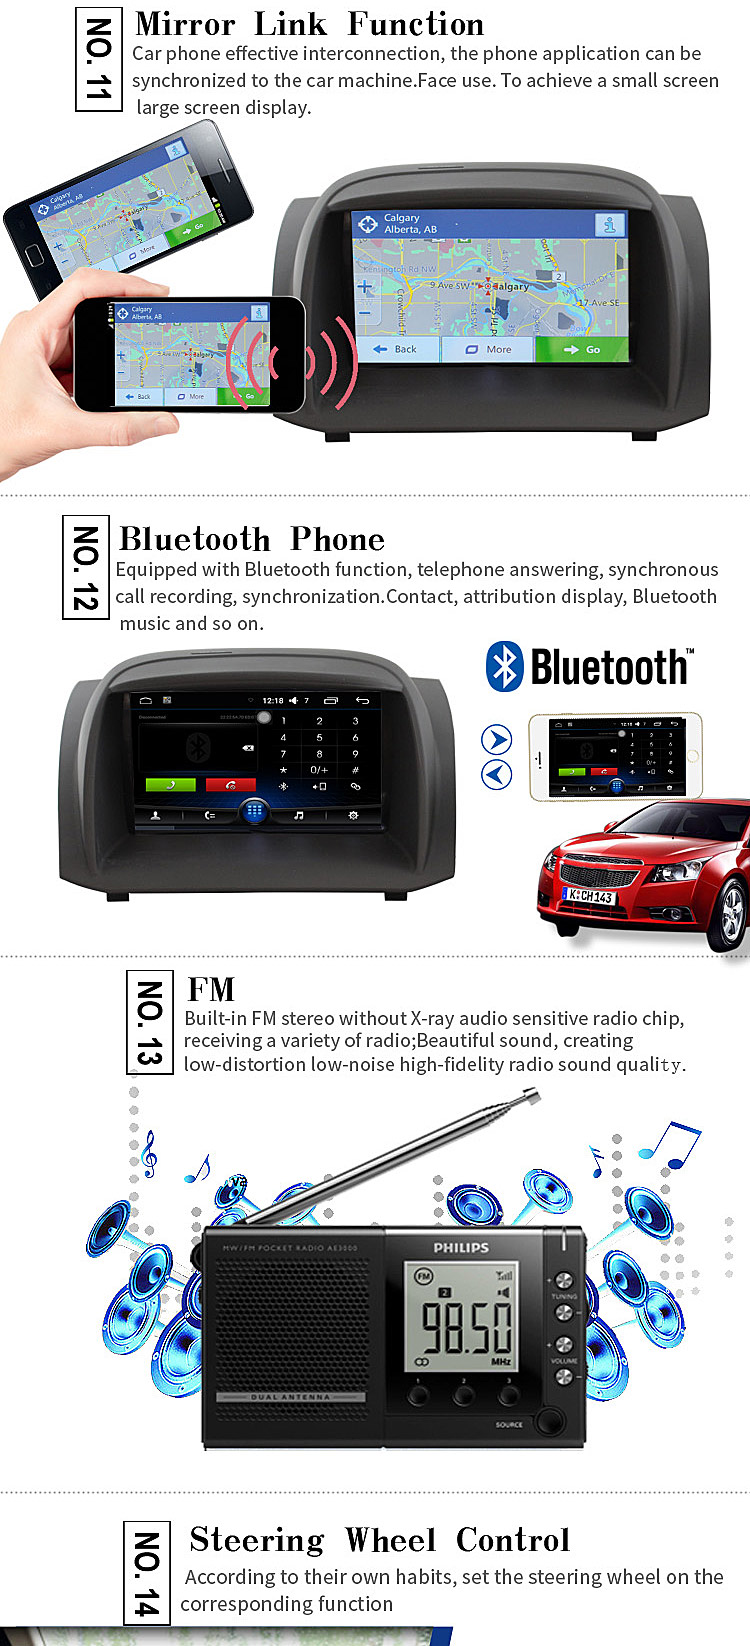 JDASTON 7 Inch 2 Din Quad Core 1G+16G Android 6.0 Car DVD Player GPS Navigation For Ford Fiesta Multimedia Radio Canbus SWC USB